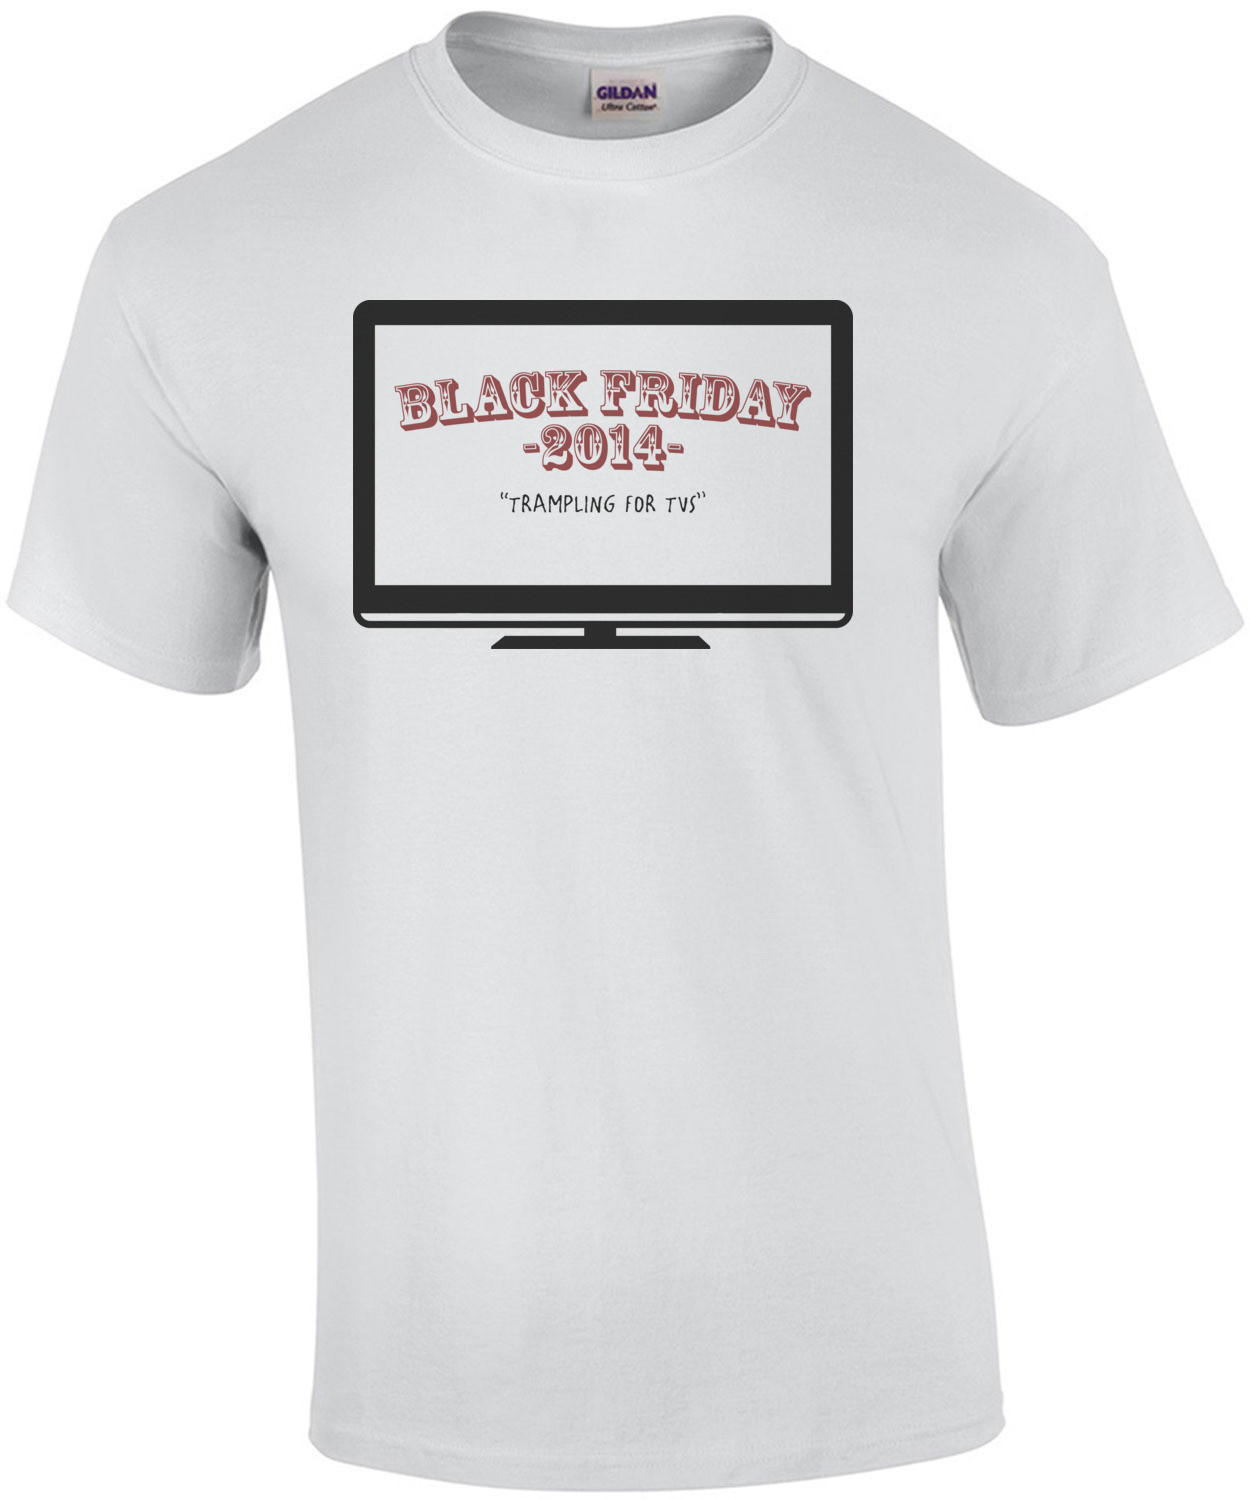 Black Friday 2014: Trampling For TVs T-Shirt